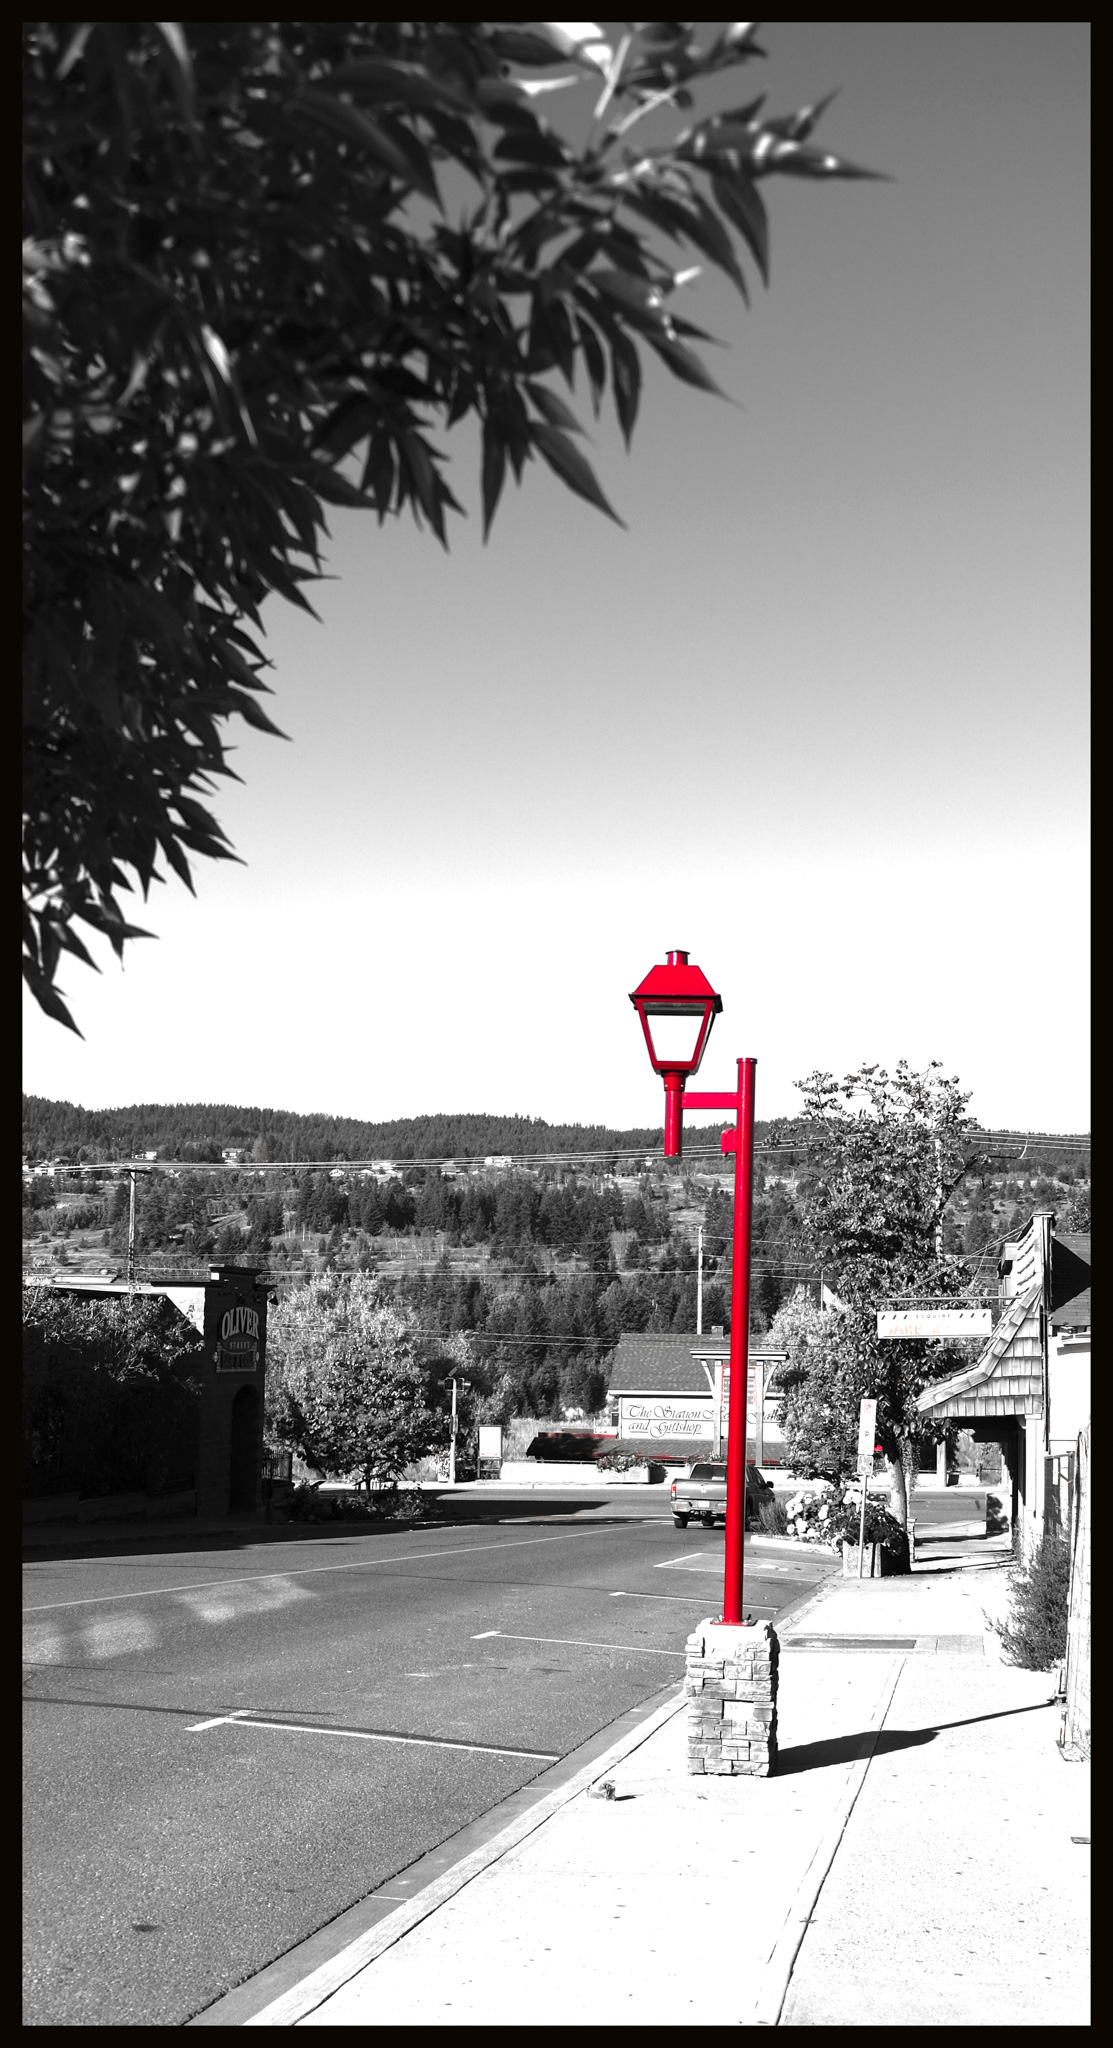 The Red Lampost - Marilyn Niemiec